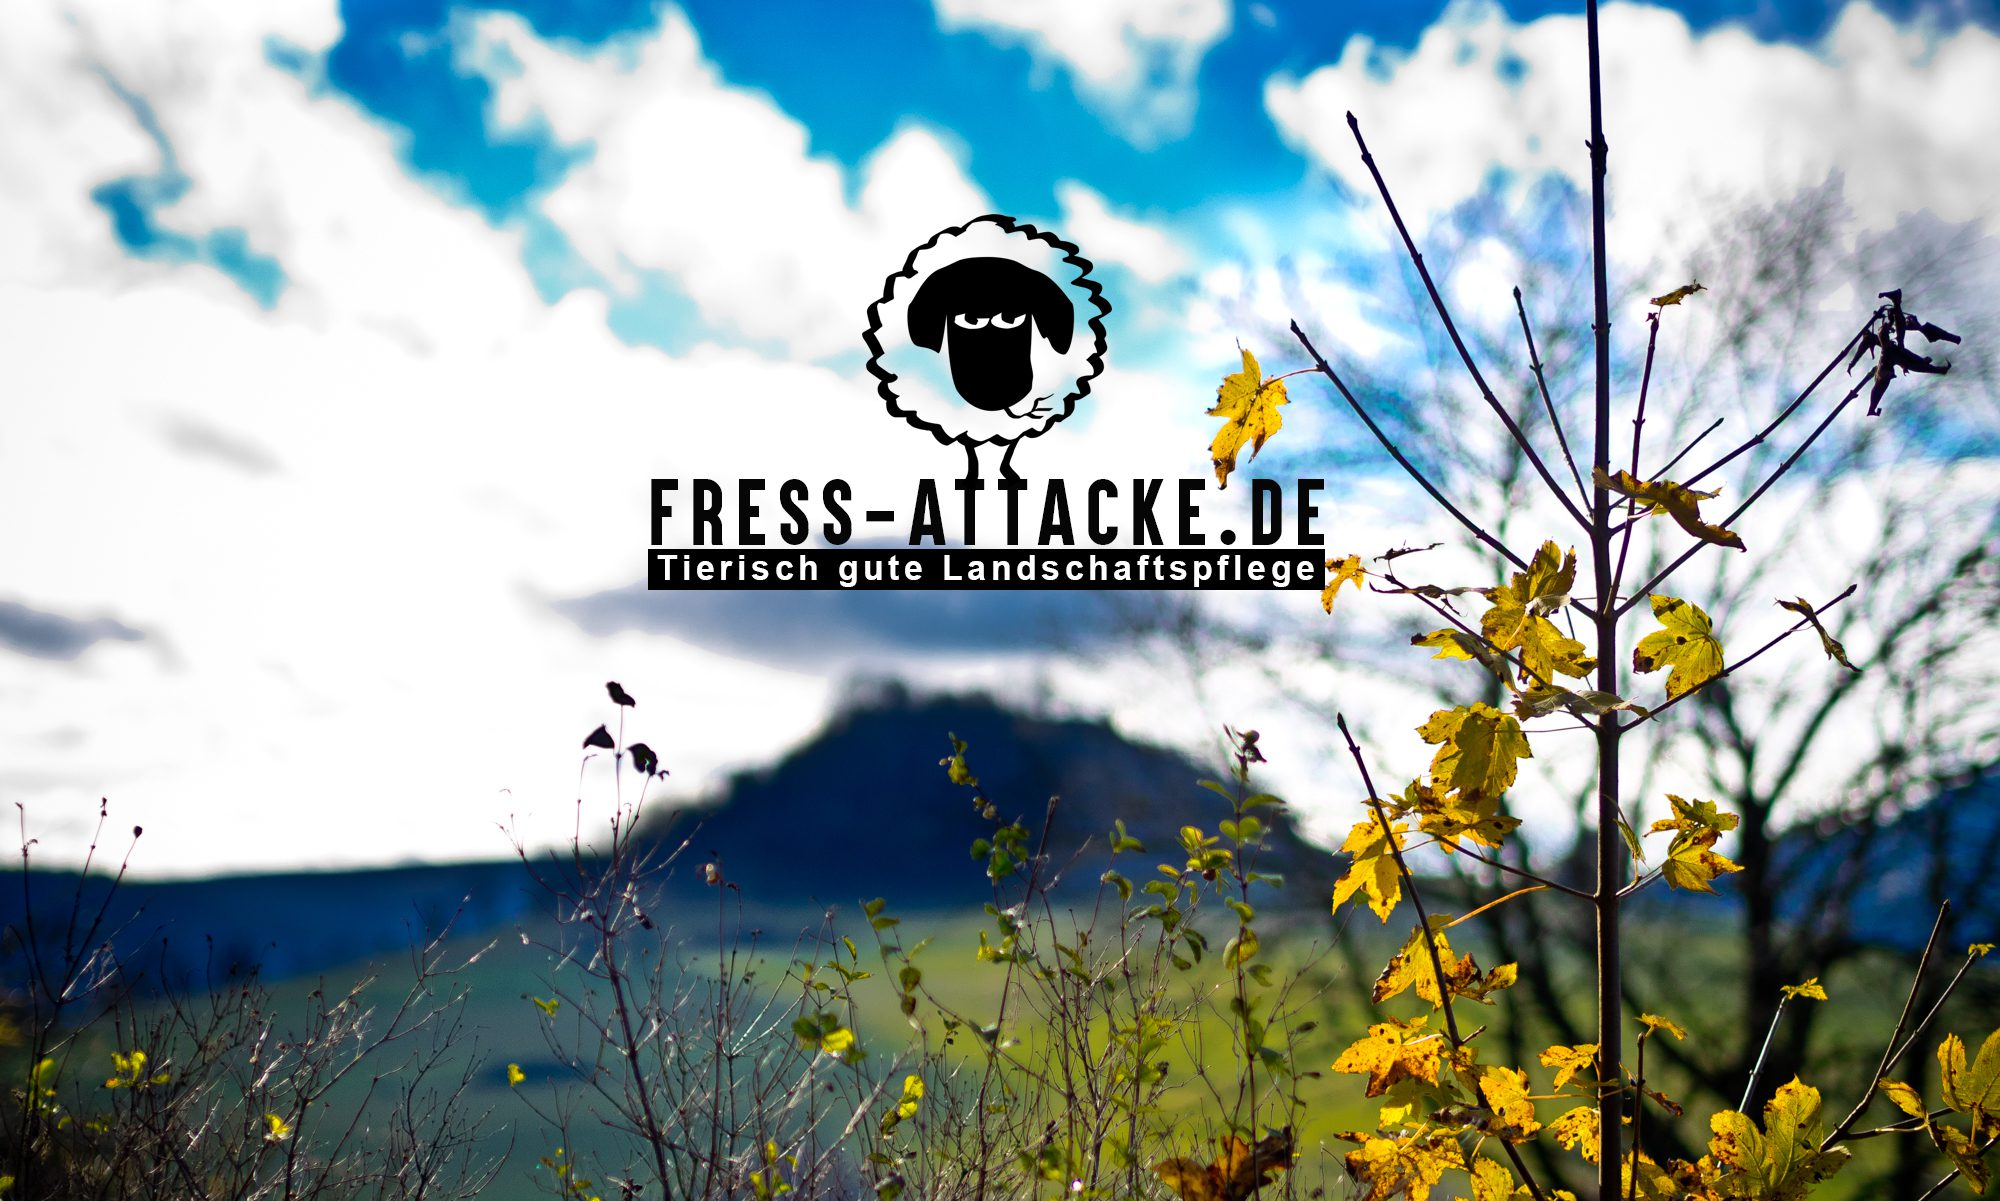 FRESS-ATTACKE